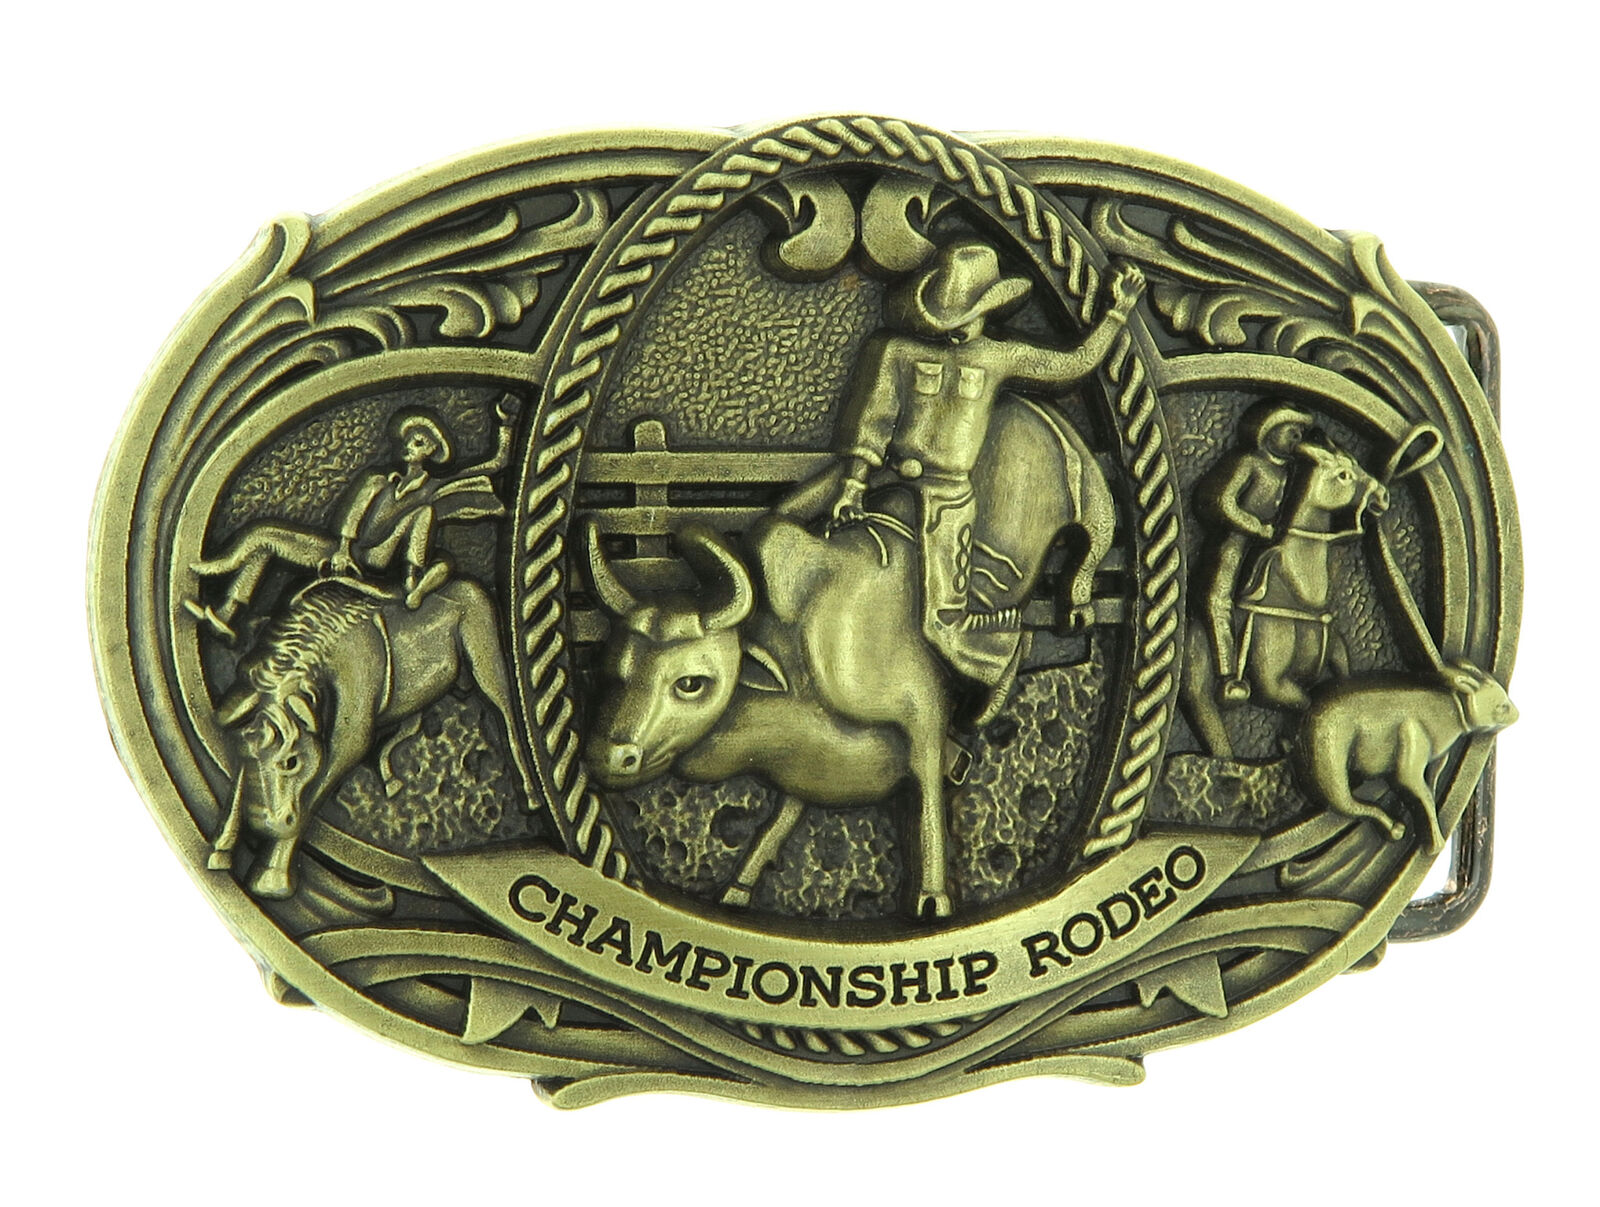 Championship Rodeo Bull Riding Cowboy Western Bronze Plated Belt Buckle